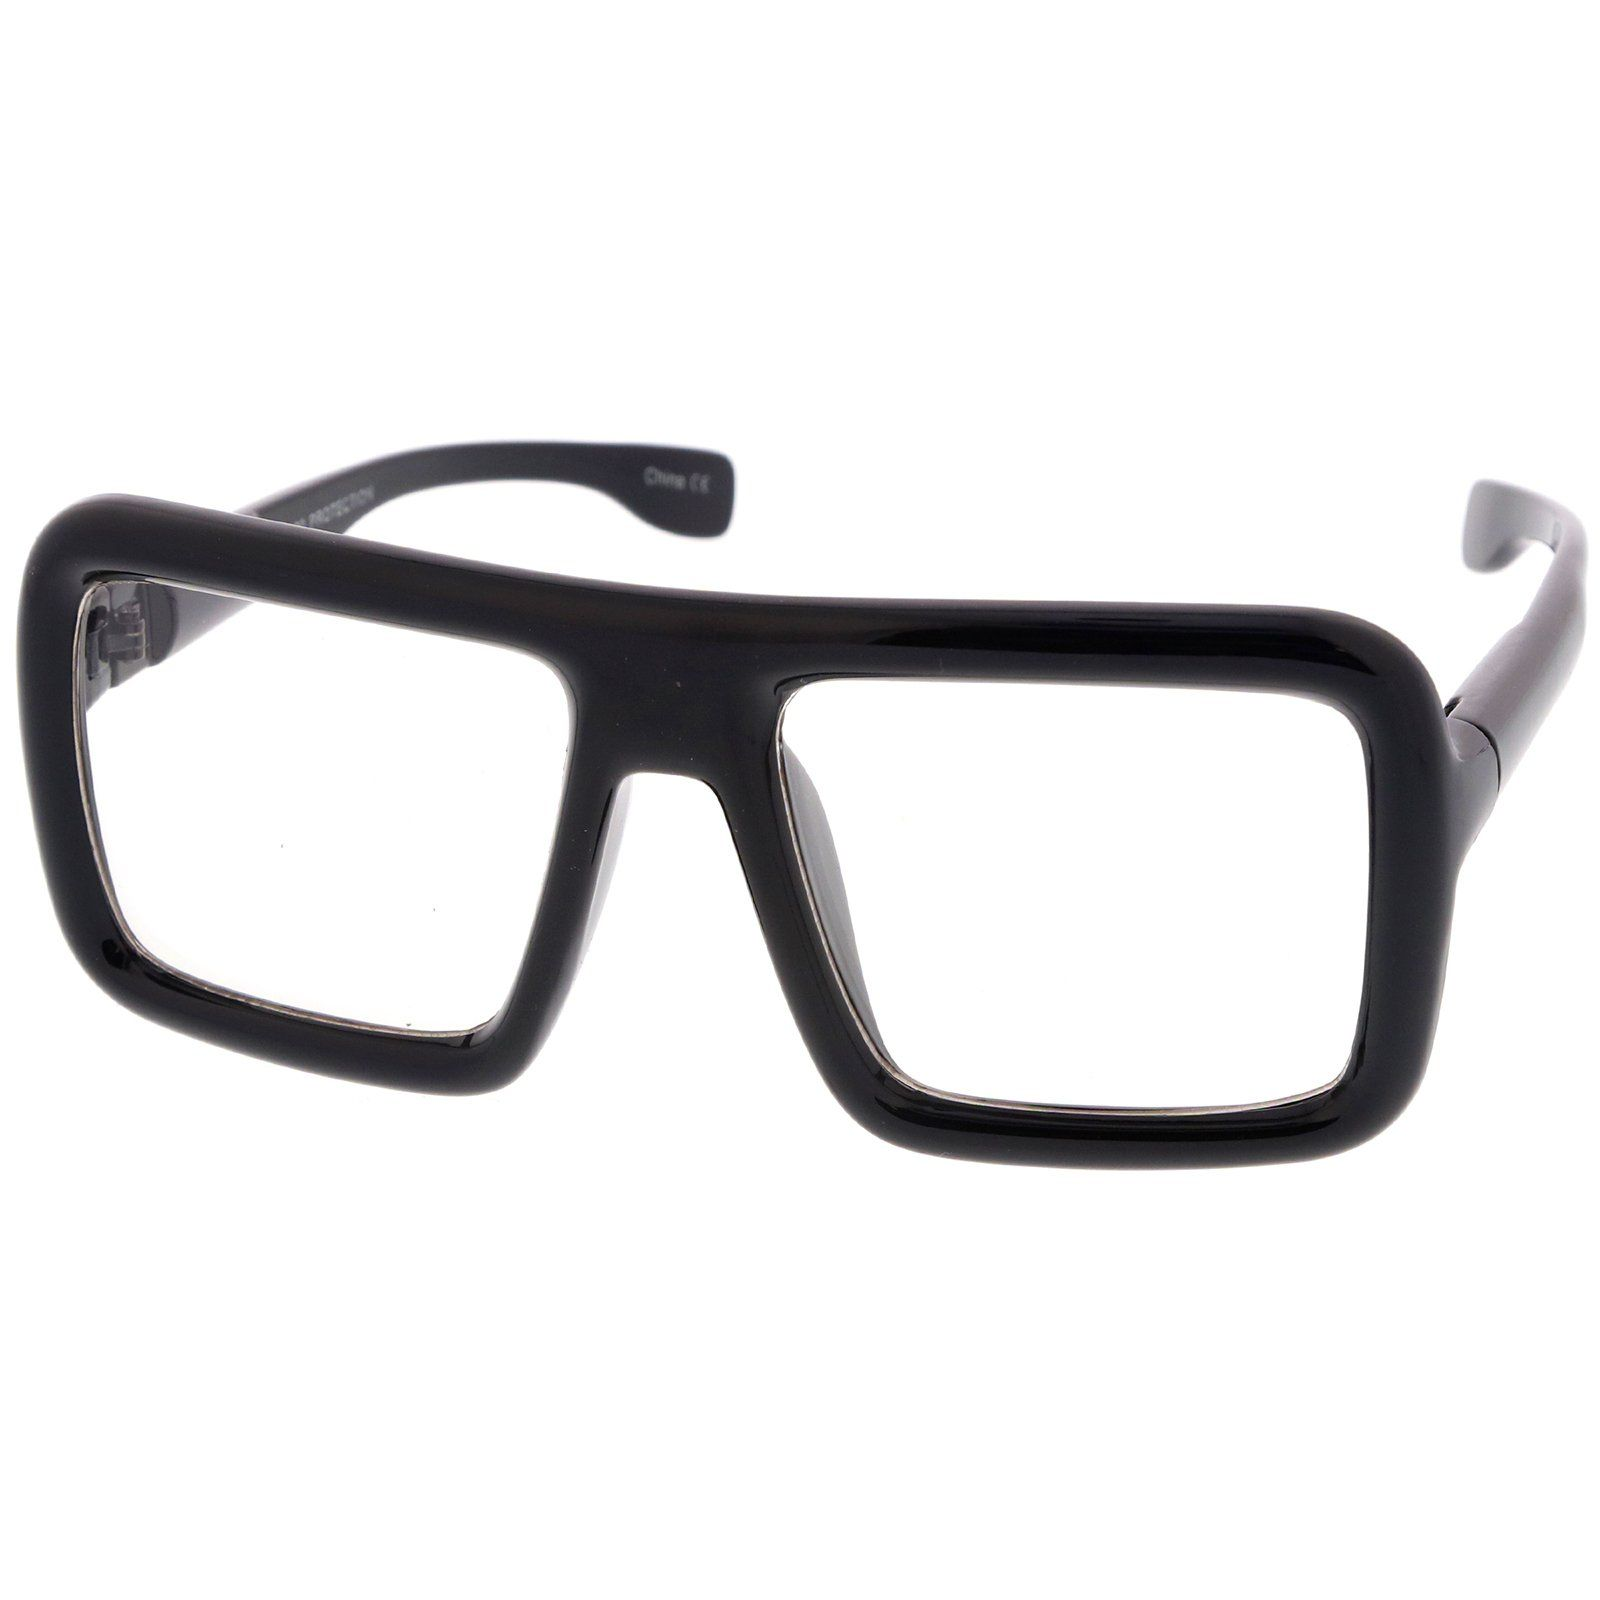 77ece581c8 Oversize Bold Thick Frame Clear Lens Square Eyeglasses 58mm – sunglass.la